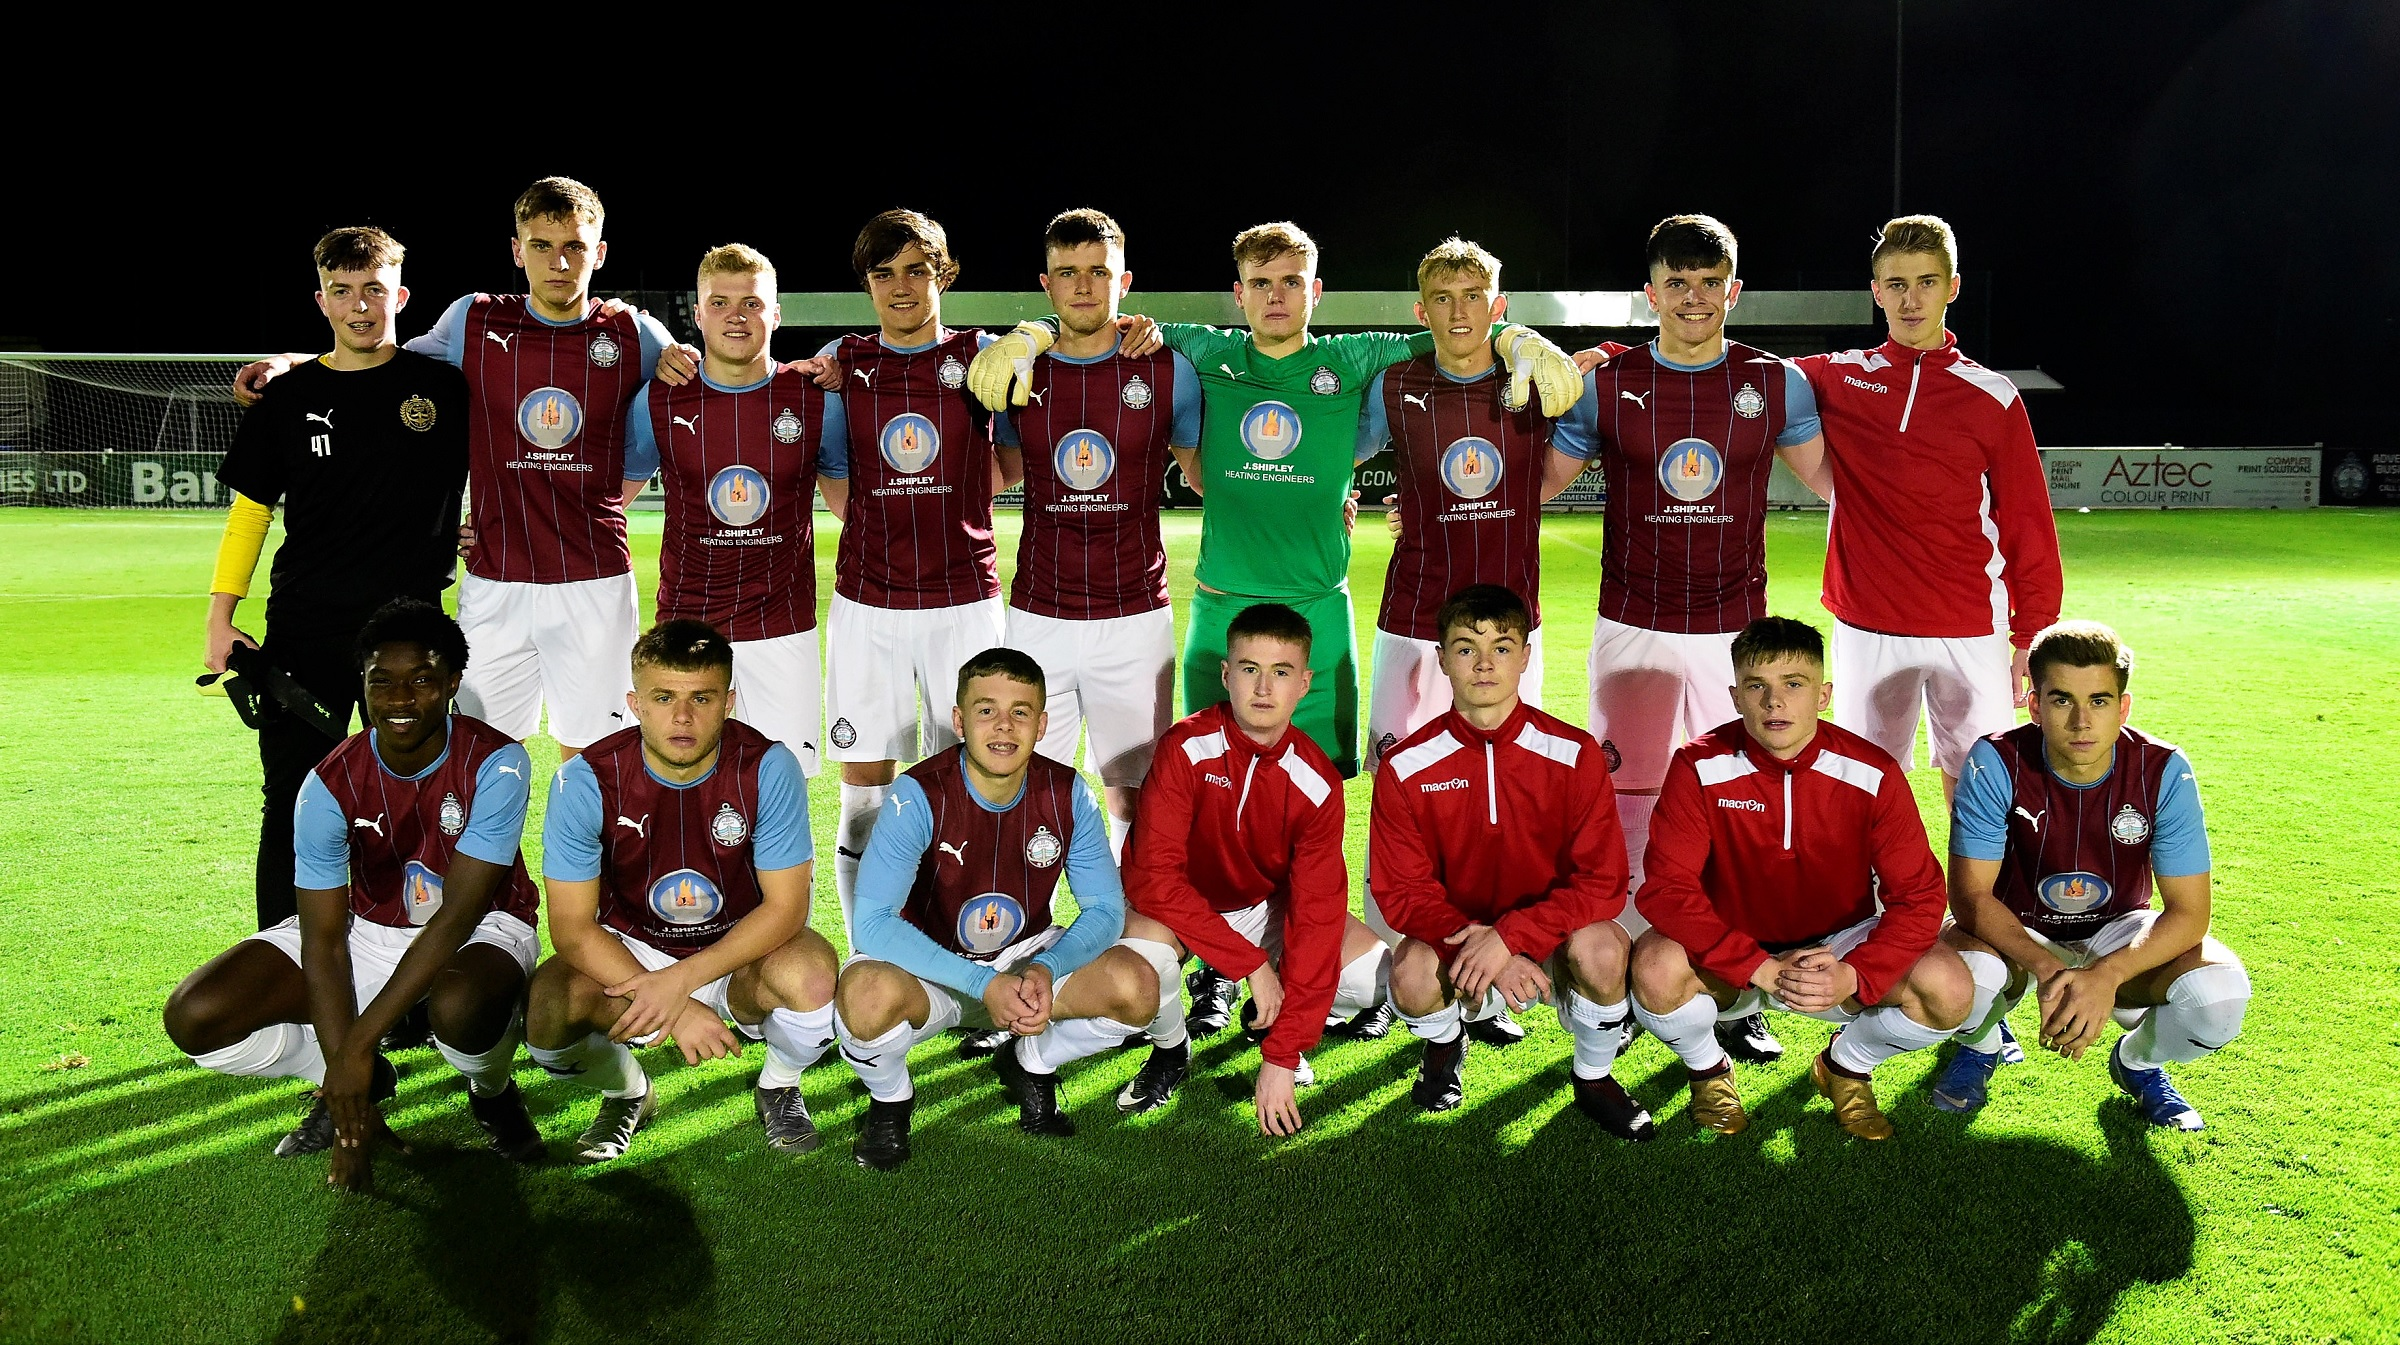 Date set for FA Youth Cup tie with Harrogate Town